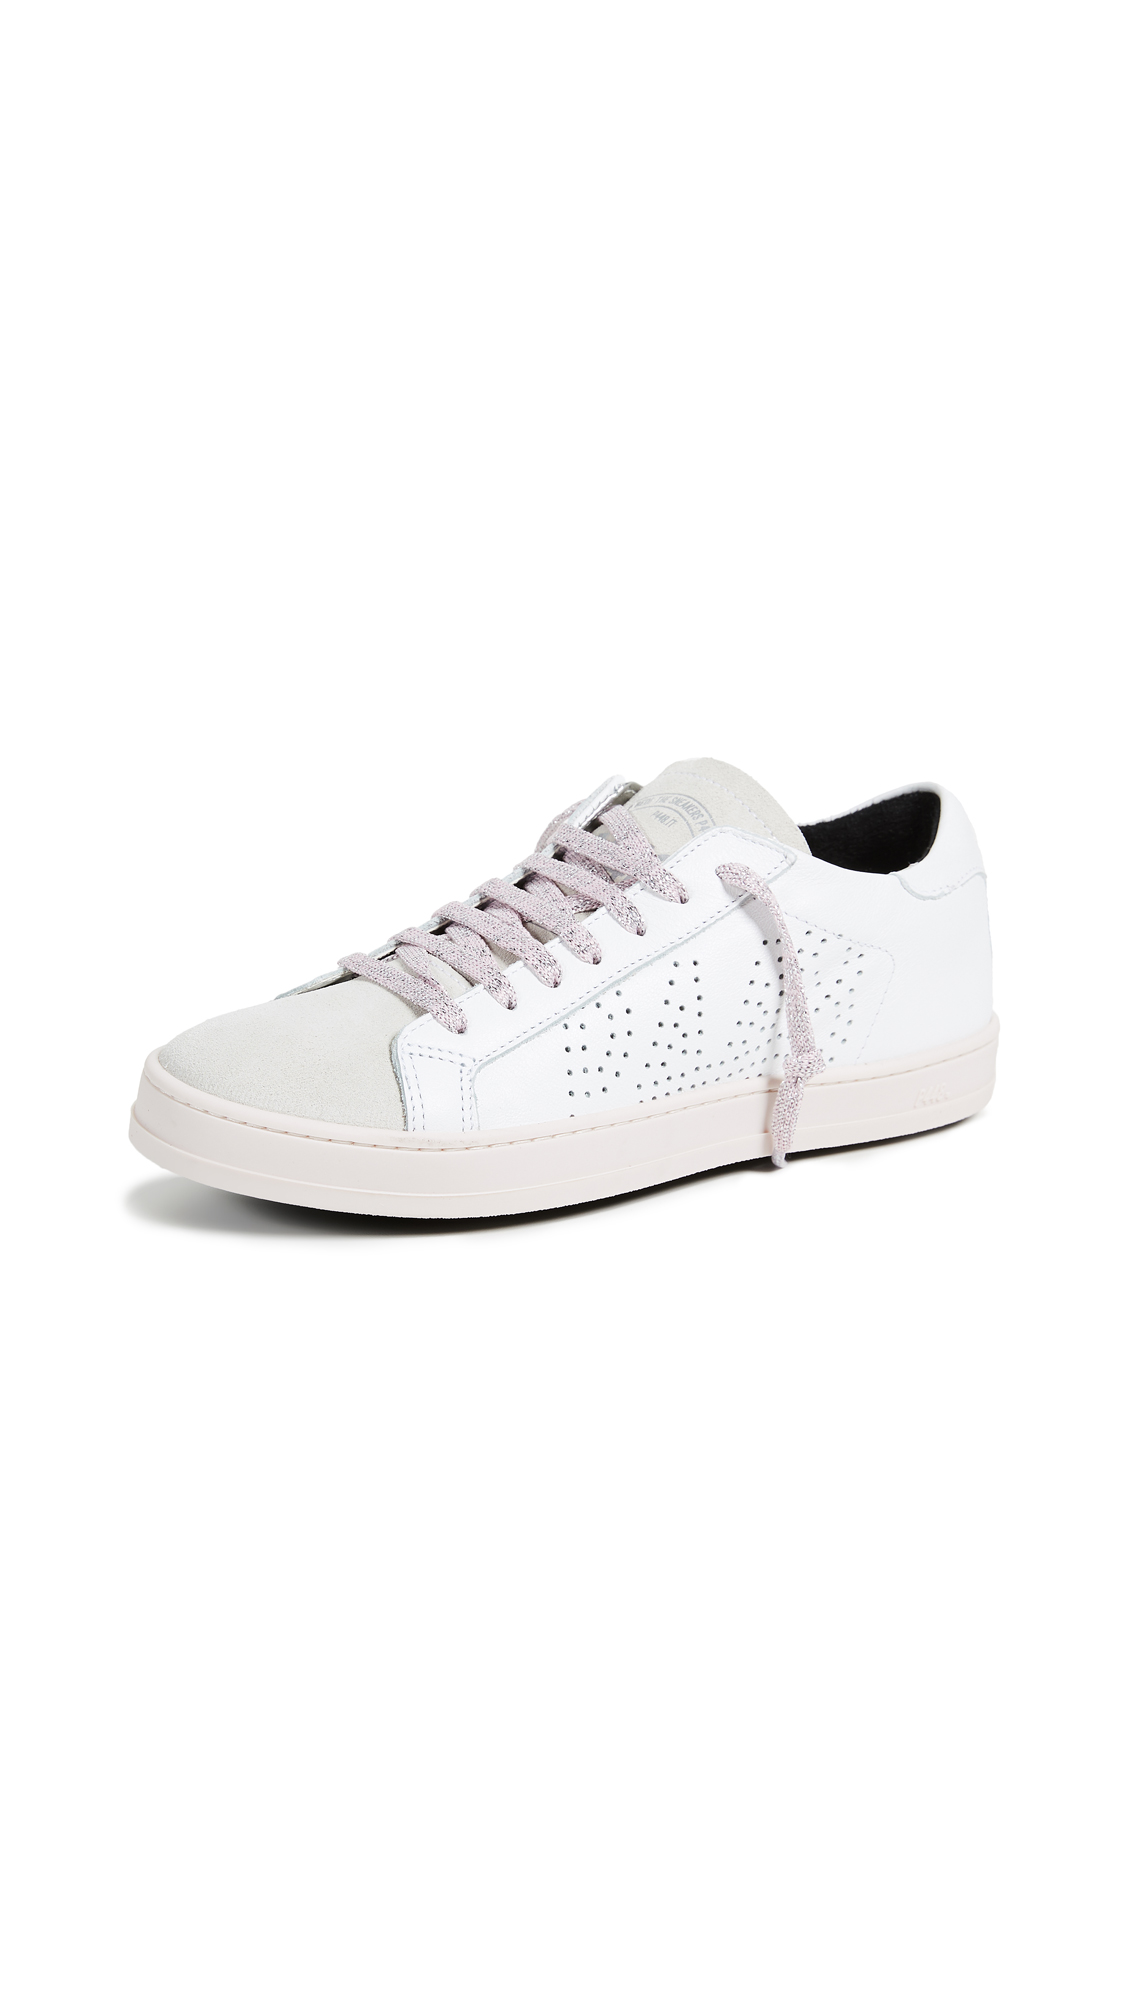 P448 John Sneakers - White/Pin